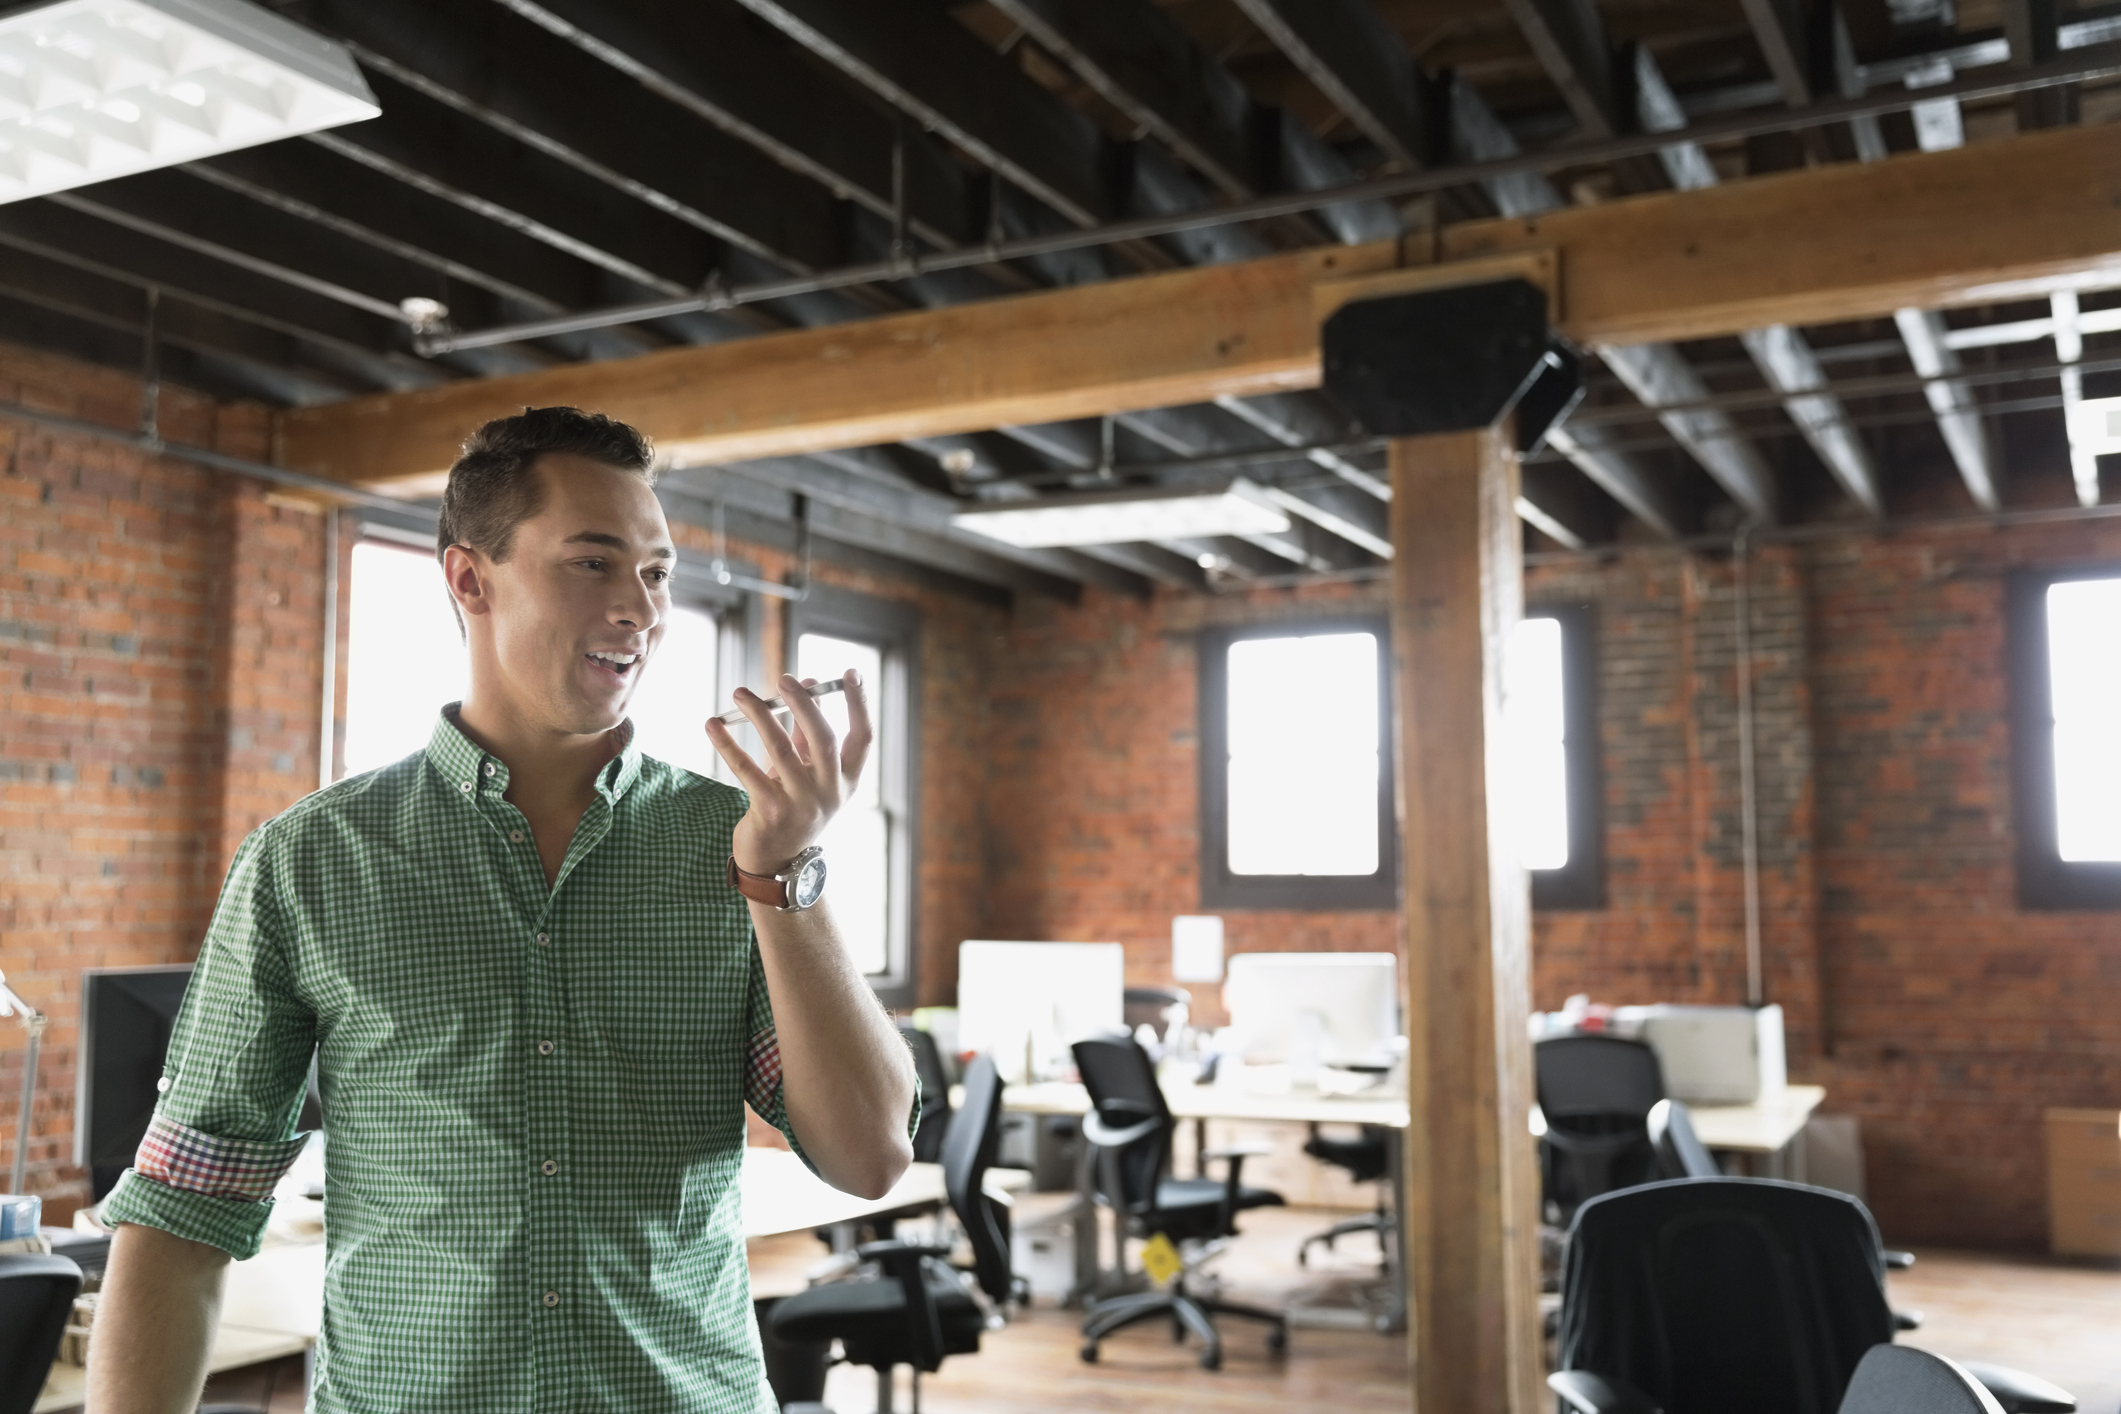 Entrepreneur talking on mobile phone in creative office space